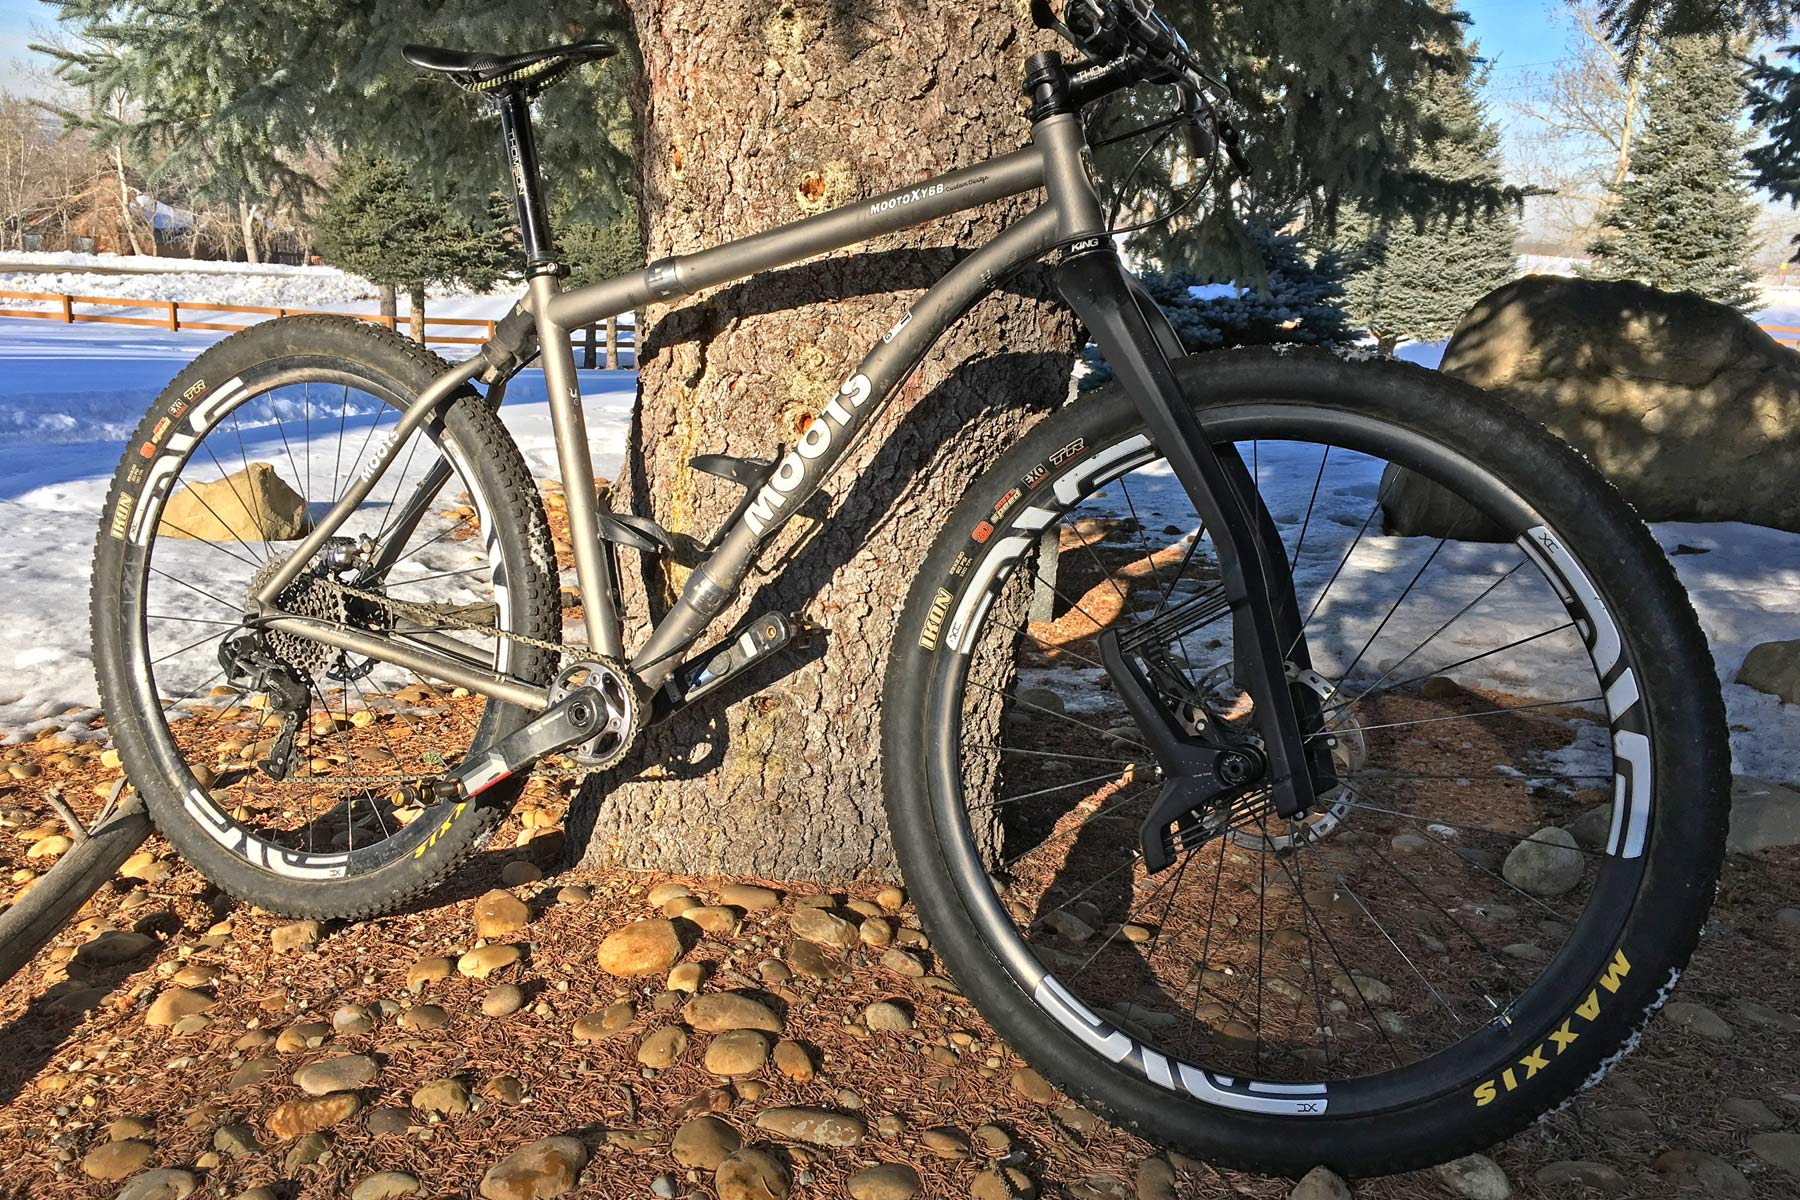 Suspension Tech Damping Erik from Canada Moots MootoX YBB frame Lauf fork overall